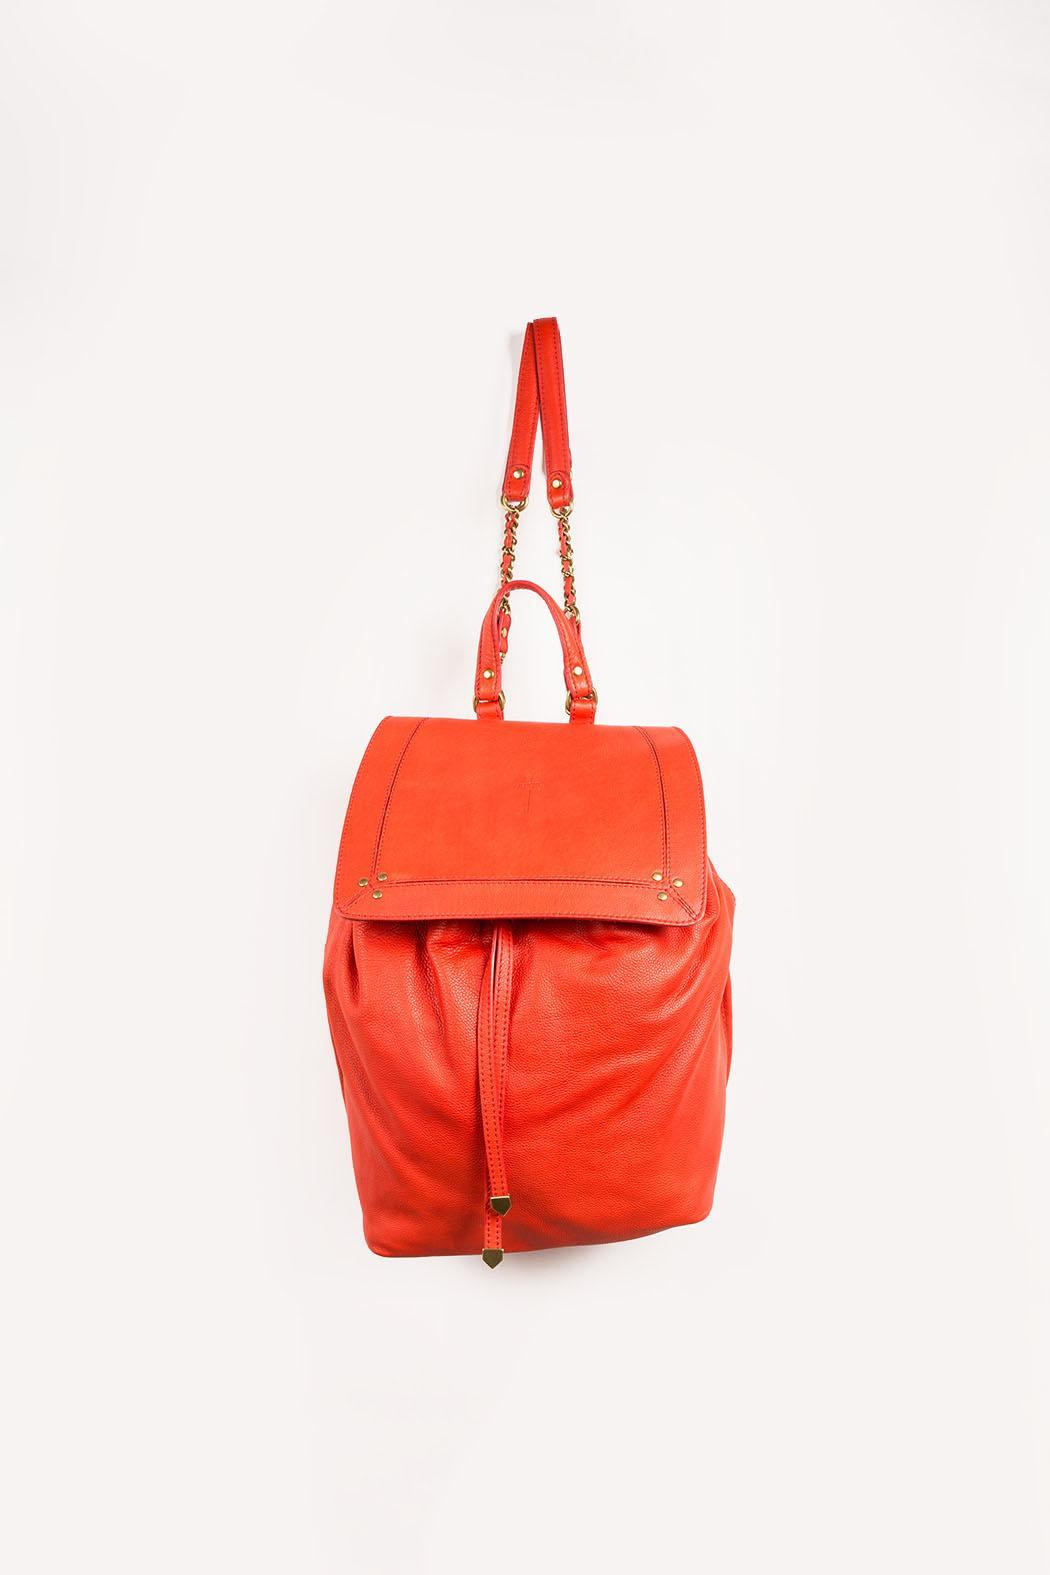 Jerome Dreyfuss Backpack - Front Cropped Image